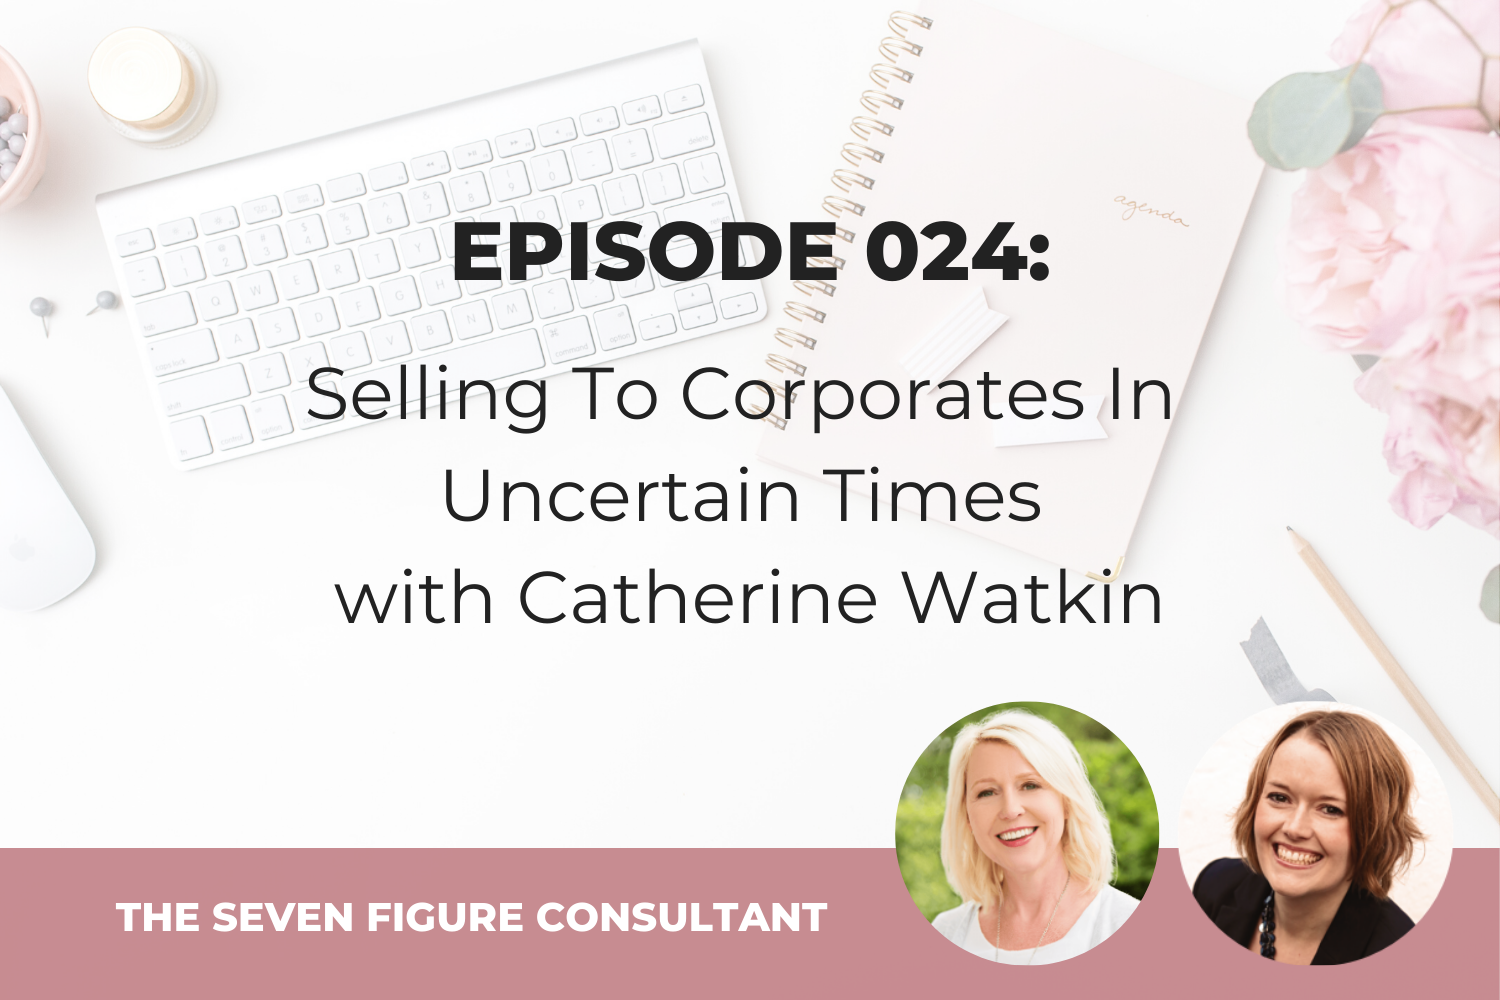 Selling To Corporates In Uncertain Times with Catherine Watkin